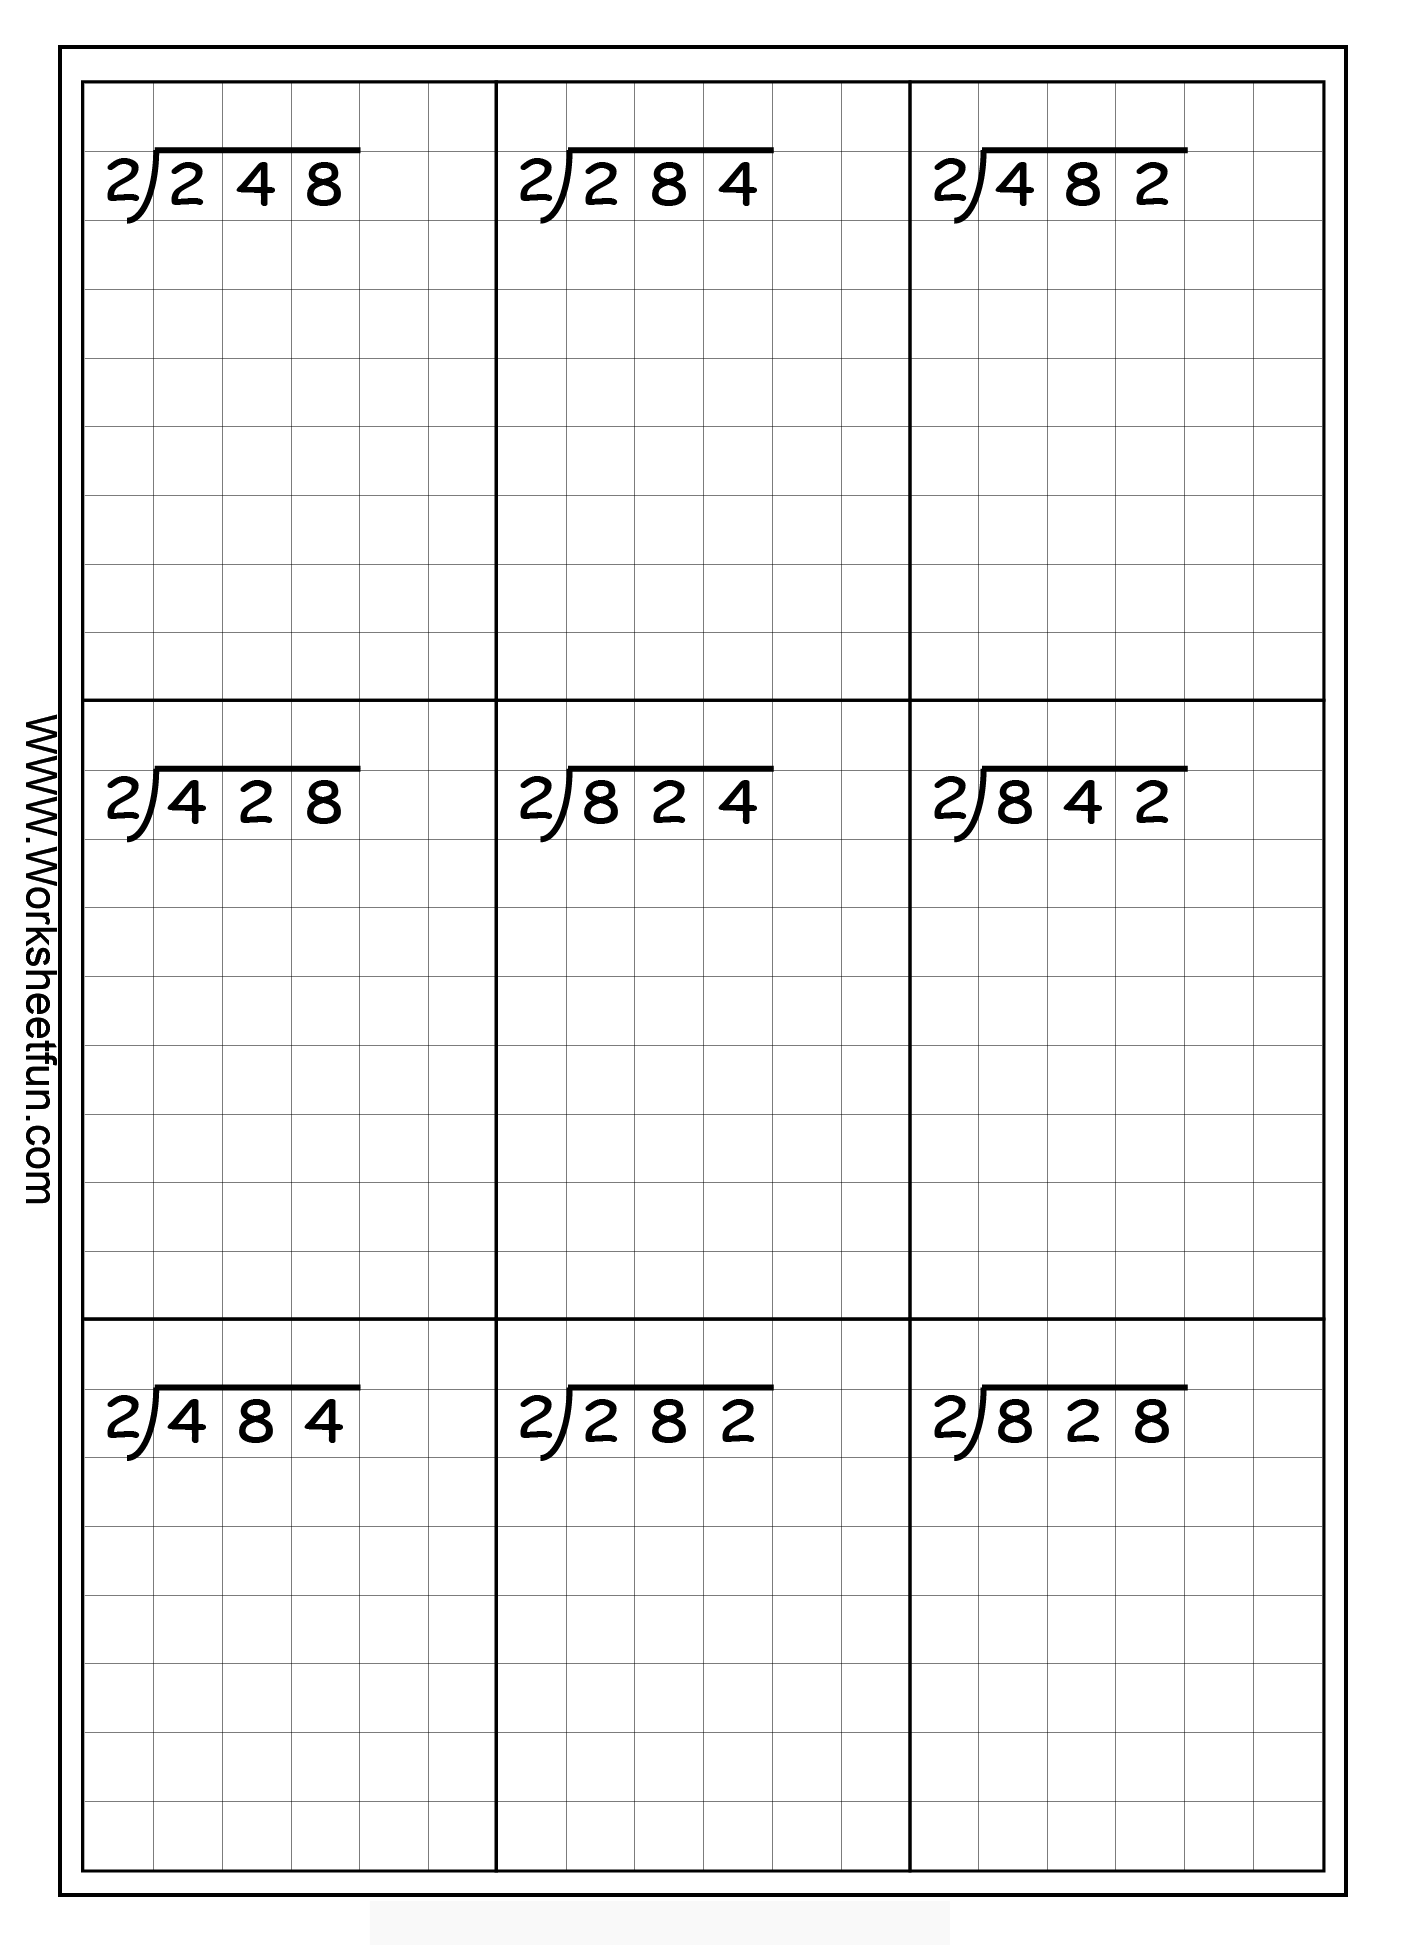 1000+ images about Division Worksheets on Pinterest | Division ...1000+ images about Division Worksheets on Pinterest | Division, Long division and Worksheets